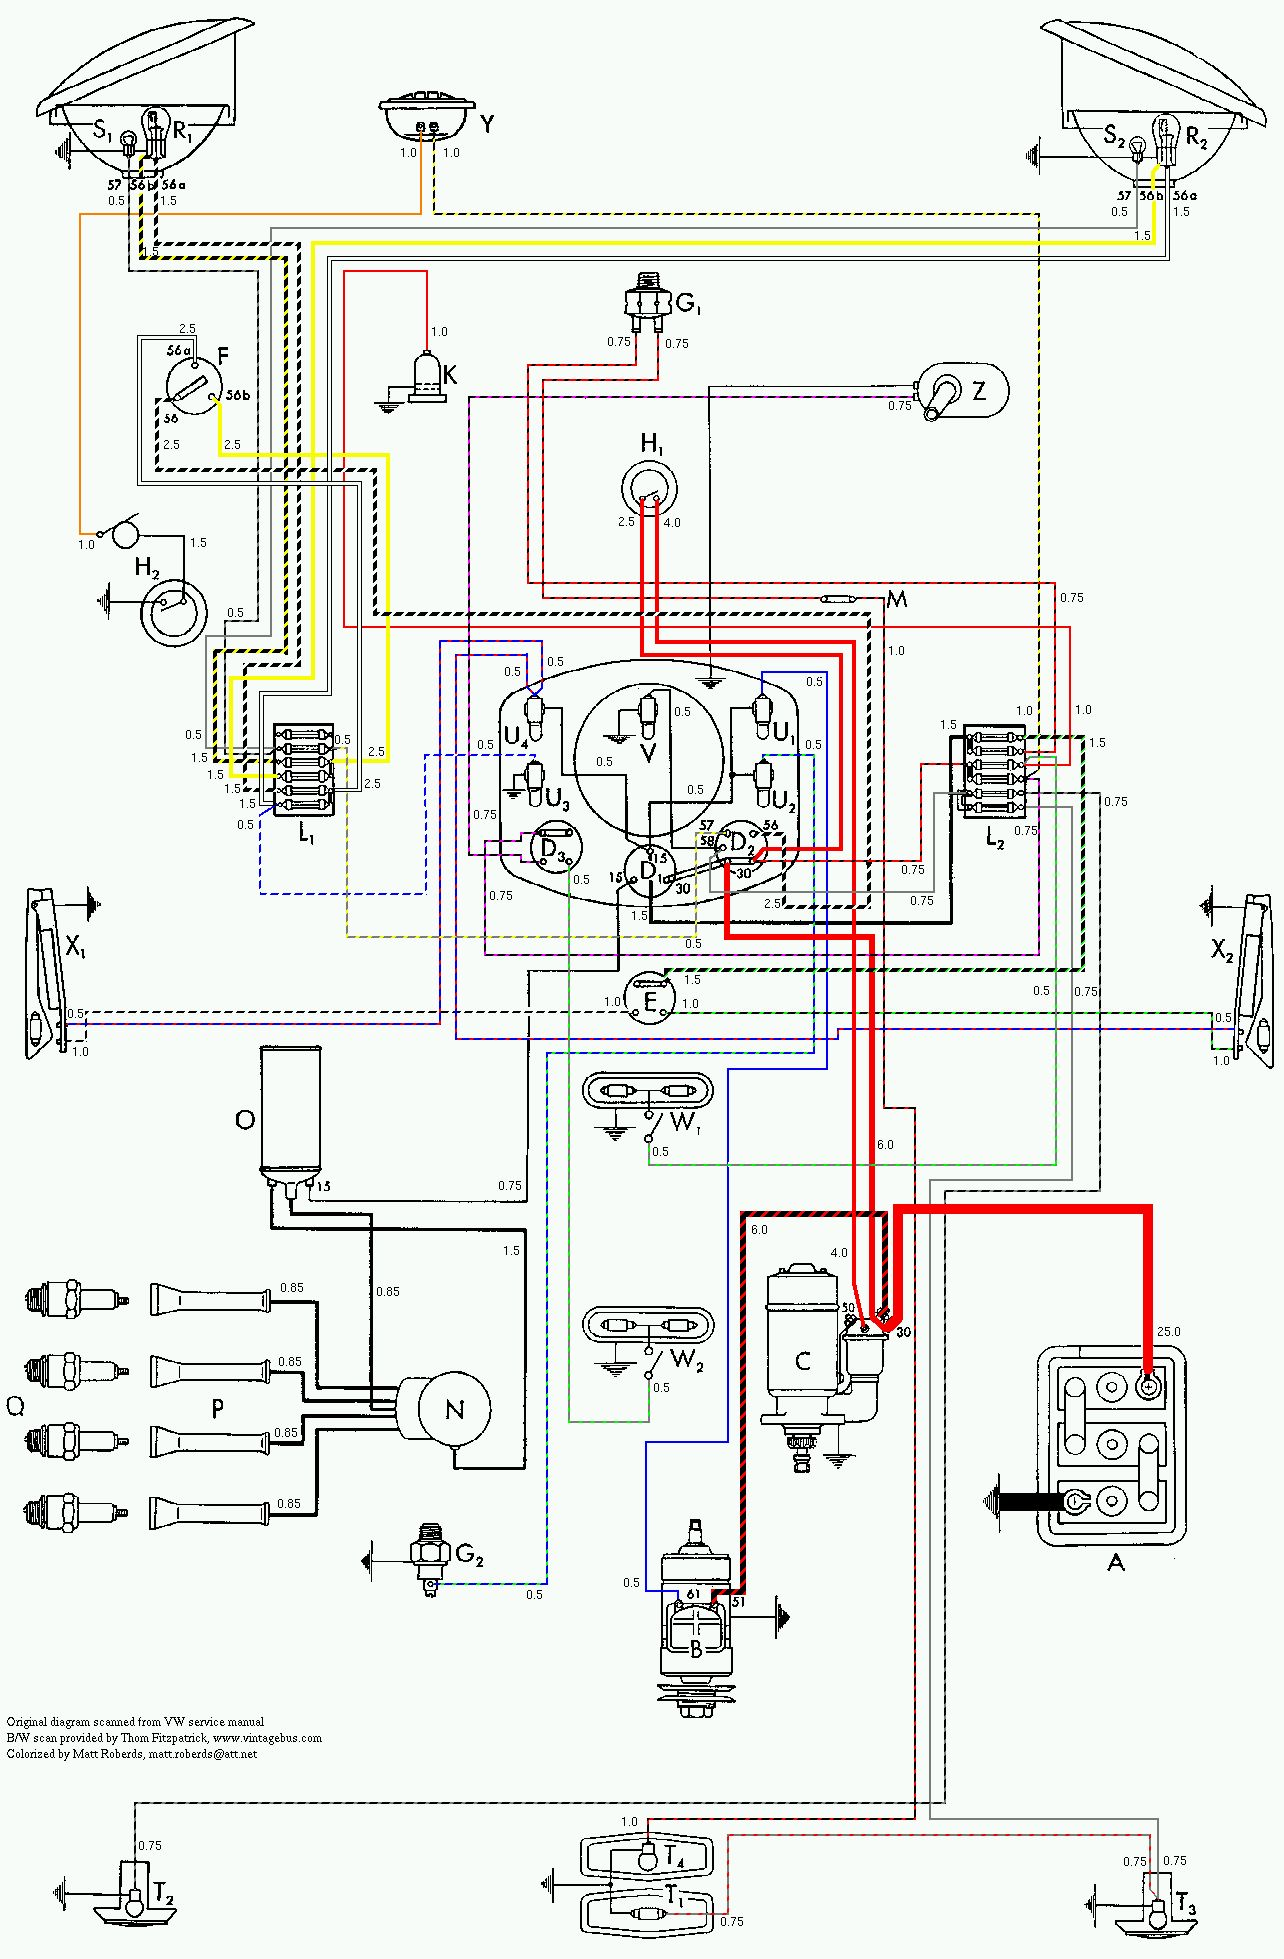 vintagebus com vw bus and other wiring diagrams rh vintagebus com Turn Signal Relay Wiring Diagram Peterbilt Turn Signal Wiring Diagram